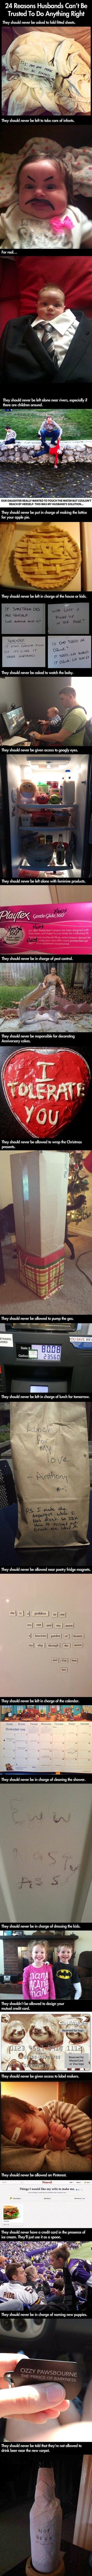 24 reasons why husbands cant be trusted to do anything right